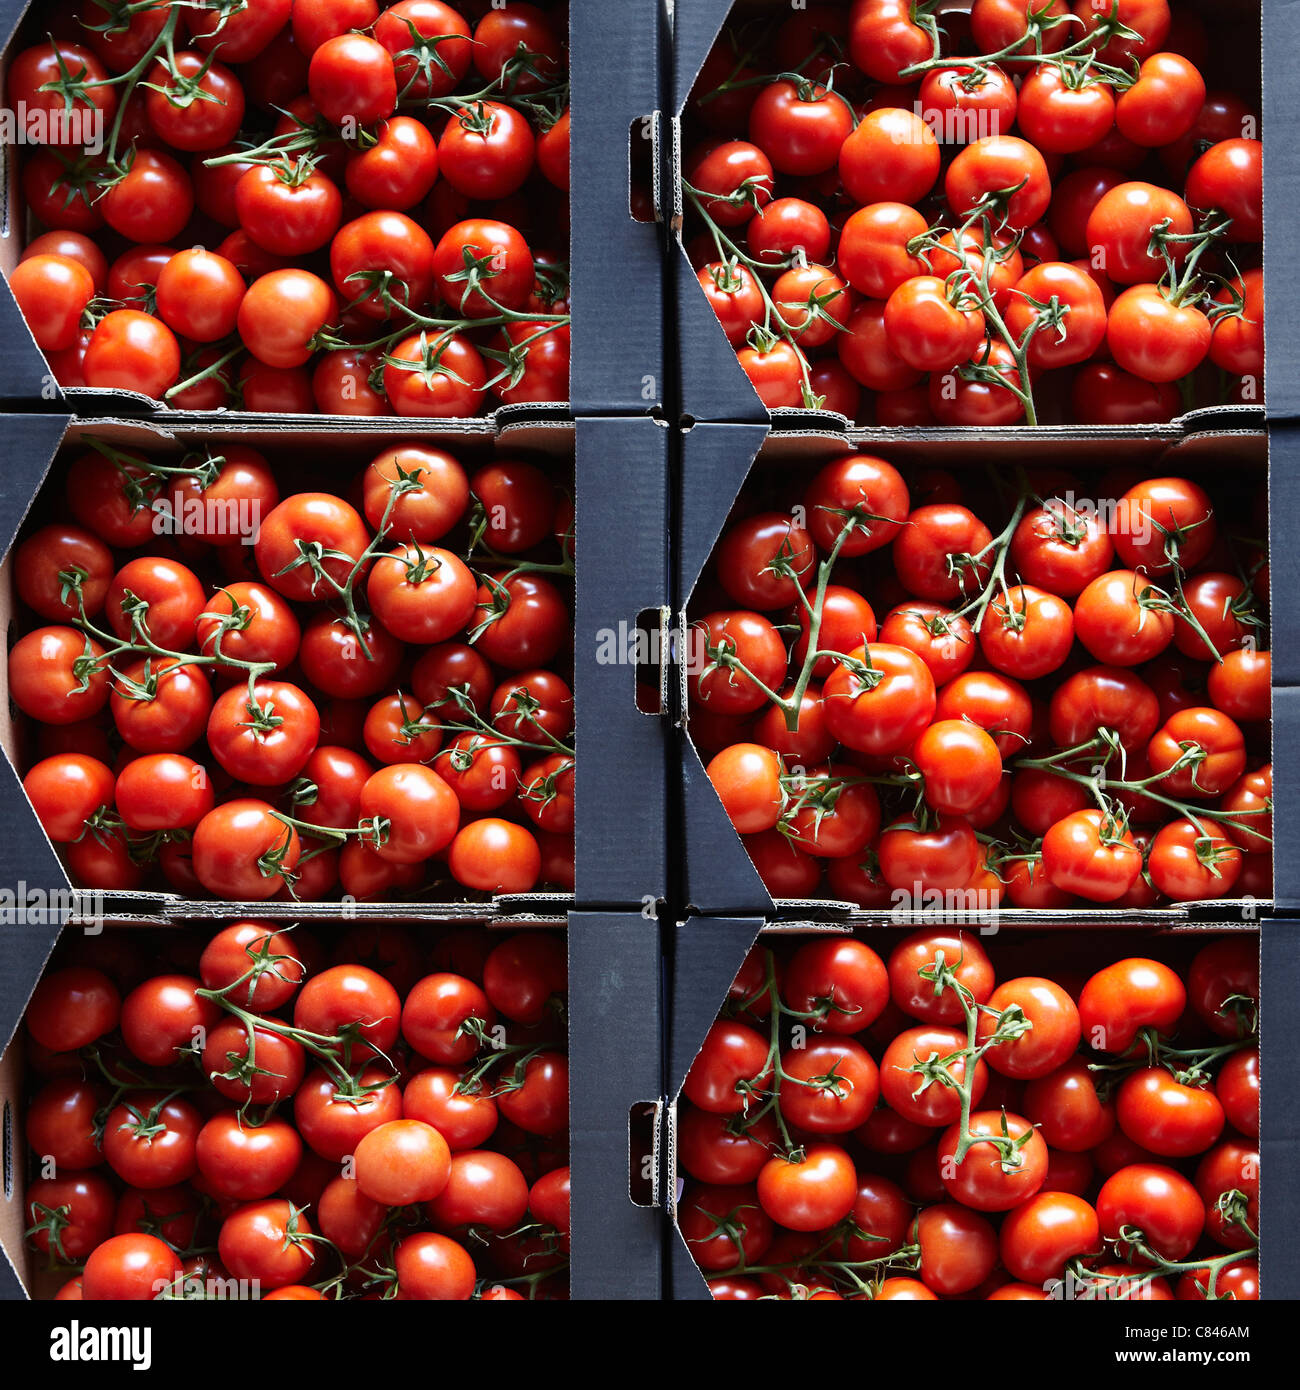 Packages of cherry tomatoes - Stock Image